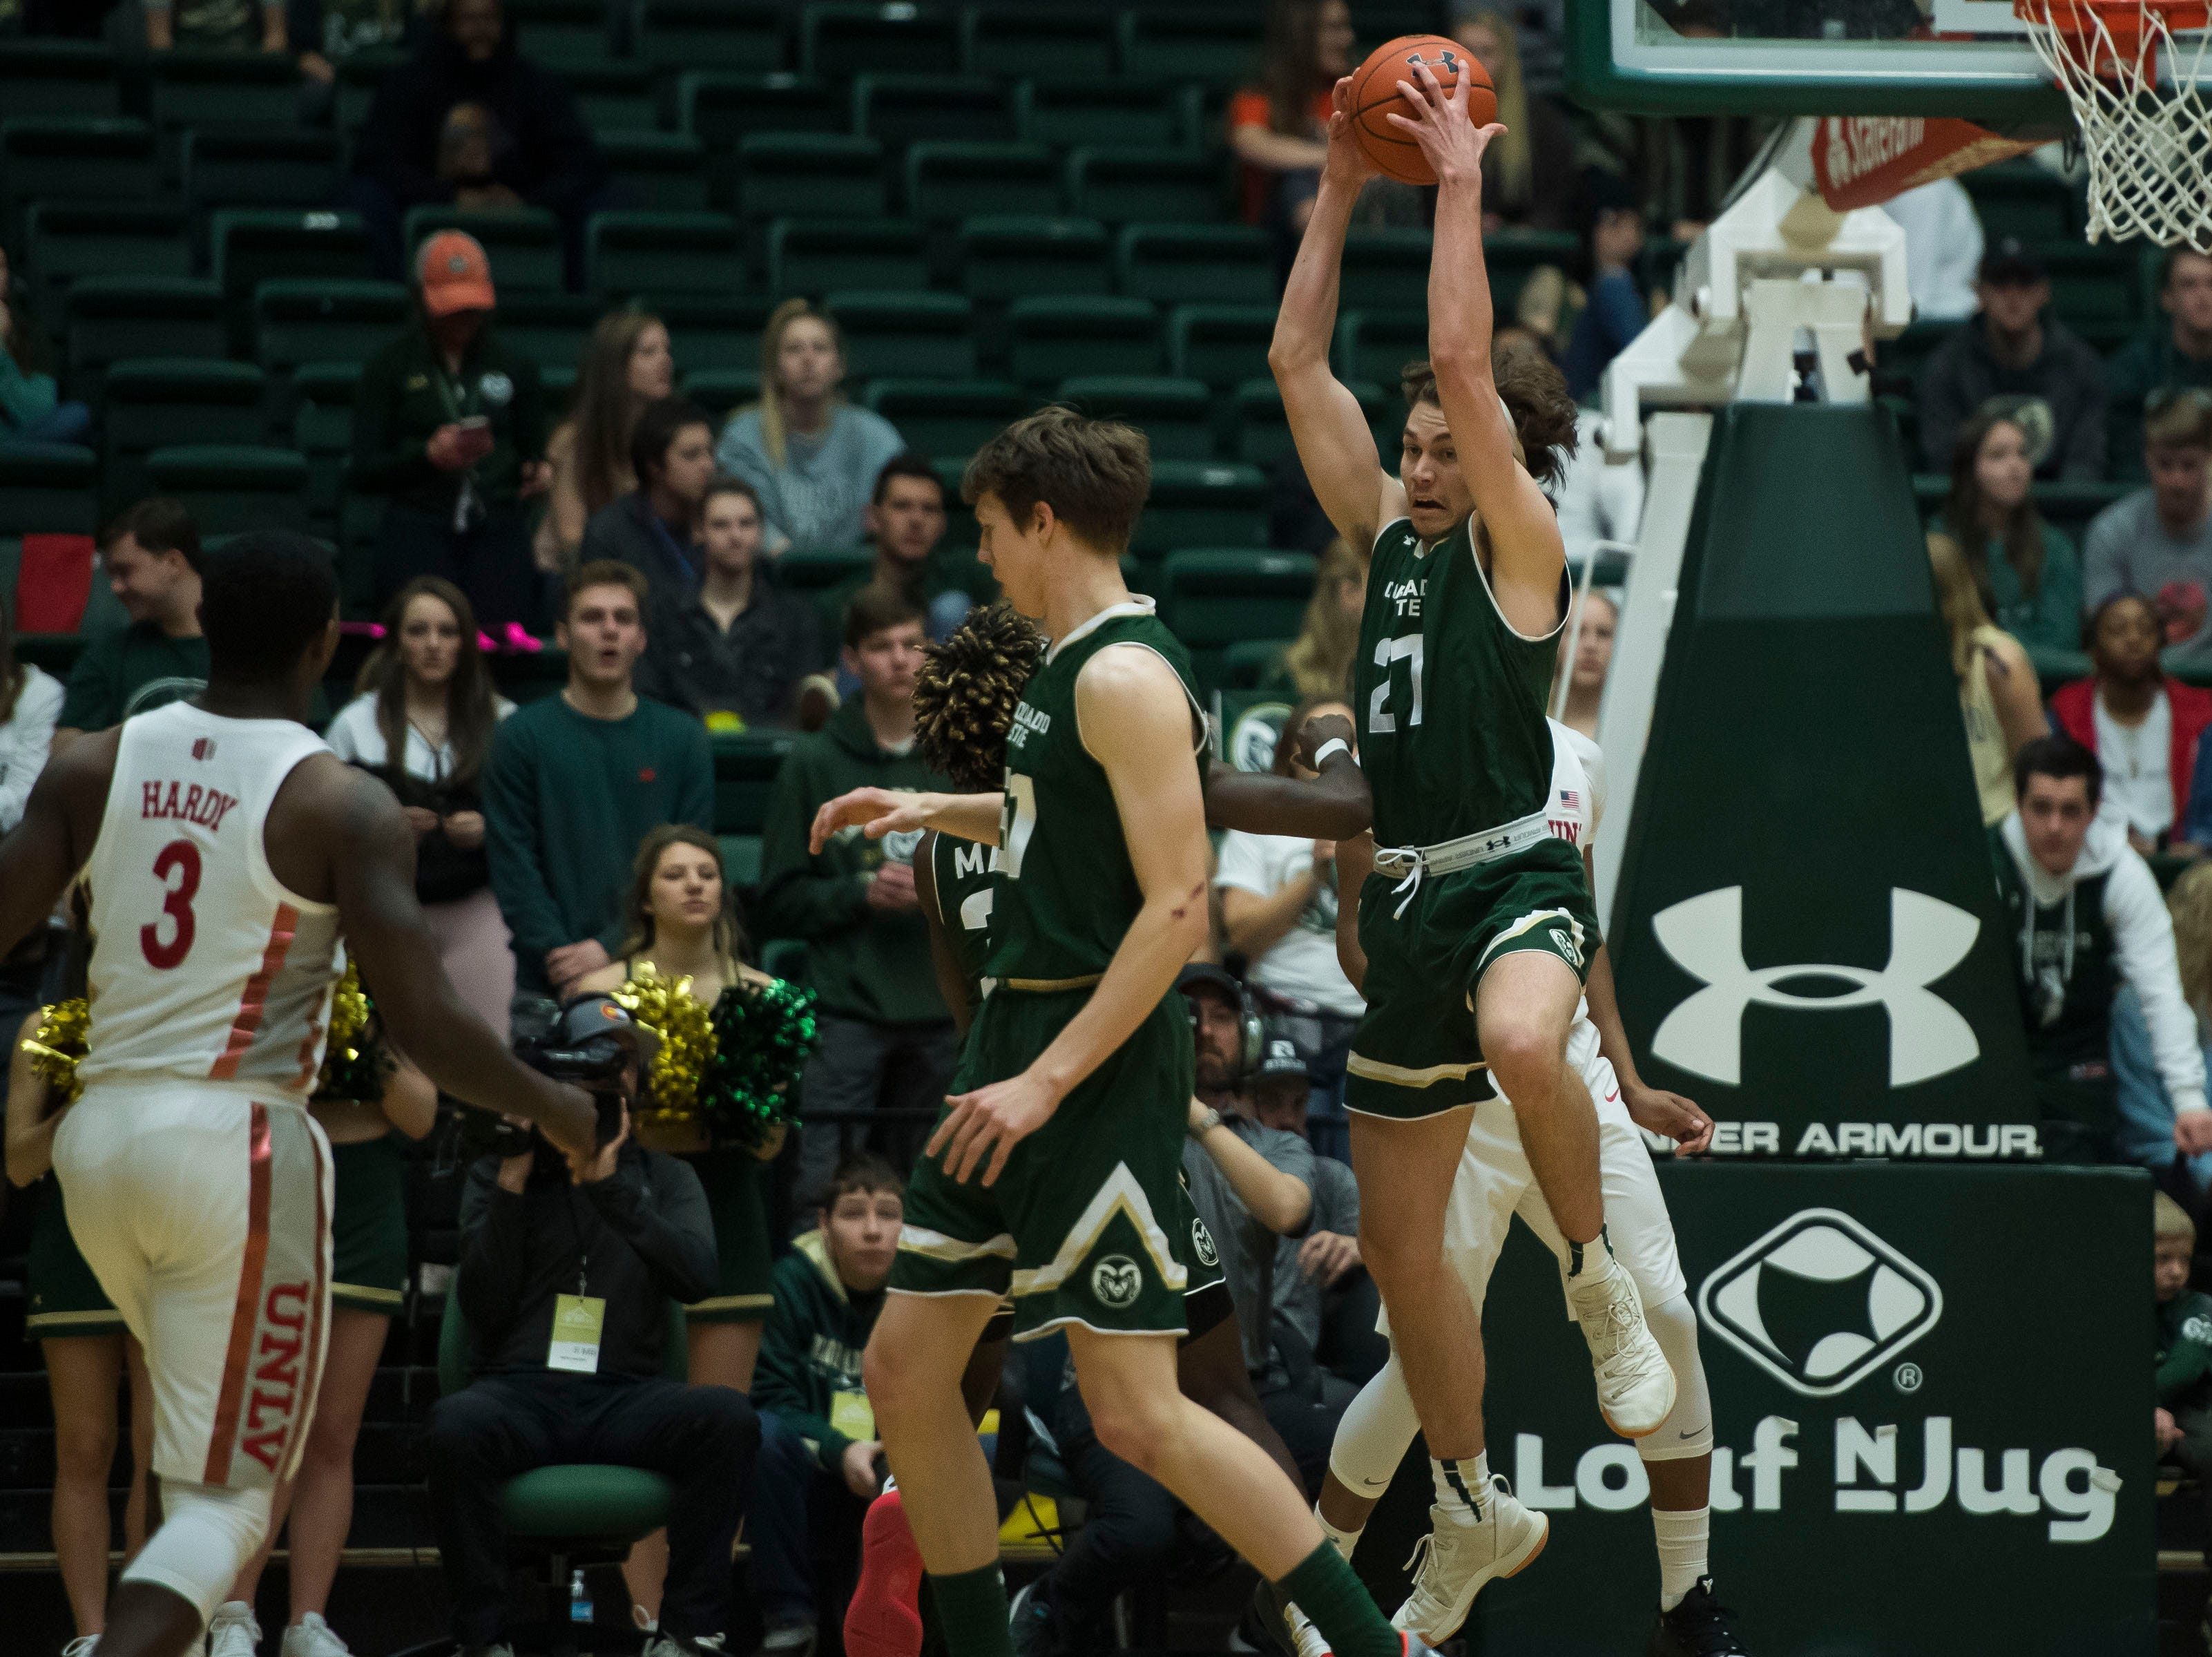 Colorado State University sophomore forward Logan Ryan (21) snags a pass from University of Nevada Las Vegas players on Saturday, March 9, 2019, at Moby Arena in Fort Collins, Colo.